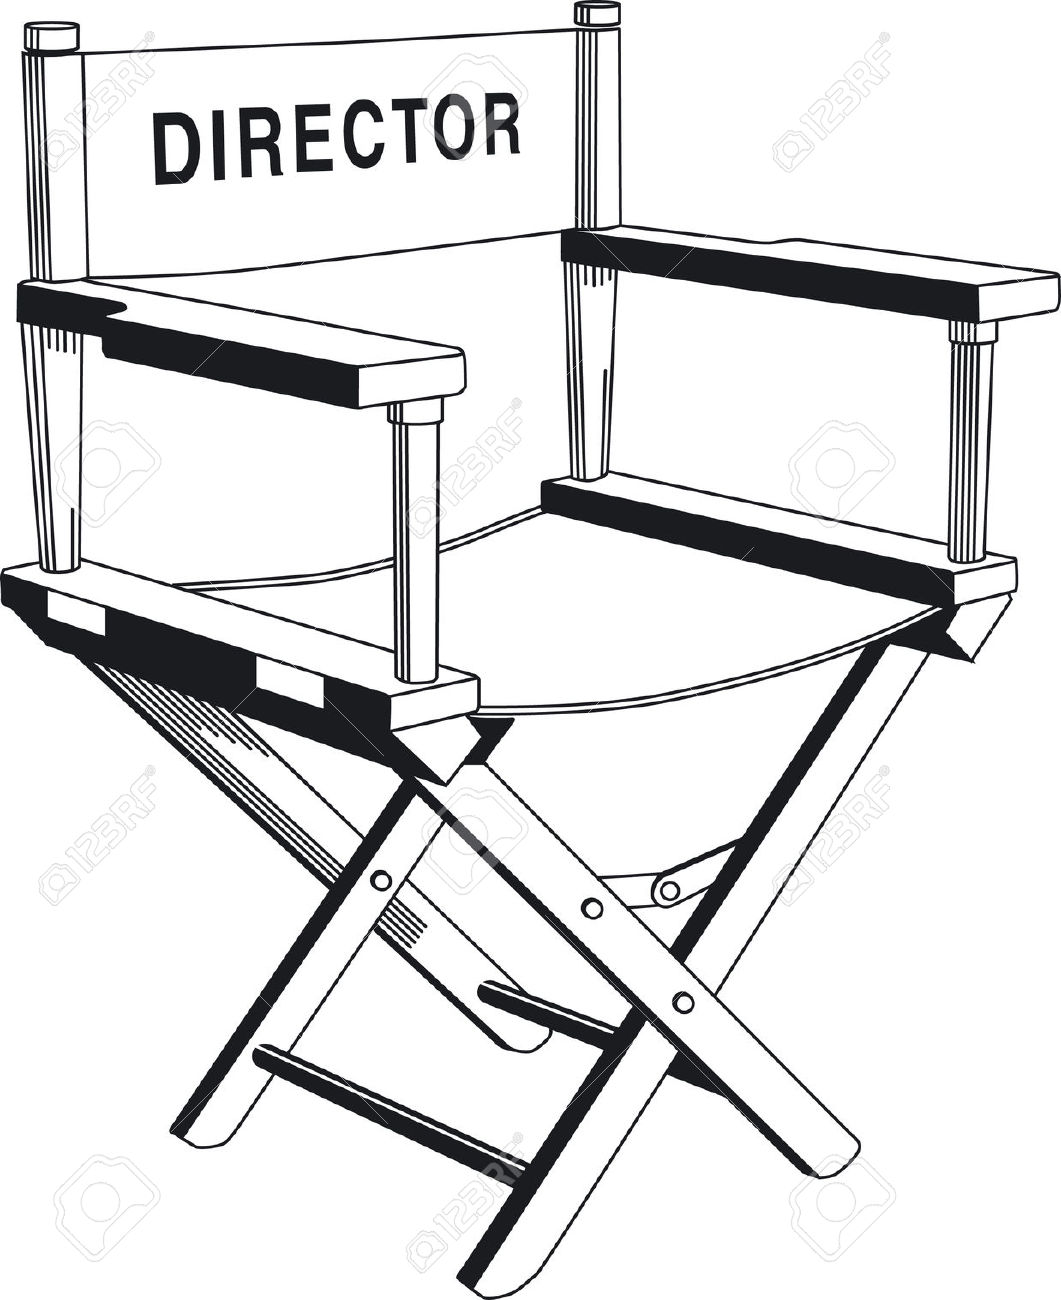 Director clipart free banner black and white download Director Clip Art Free | Clipart Panda - Free Clipart Images banner black and white download